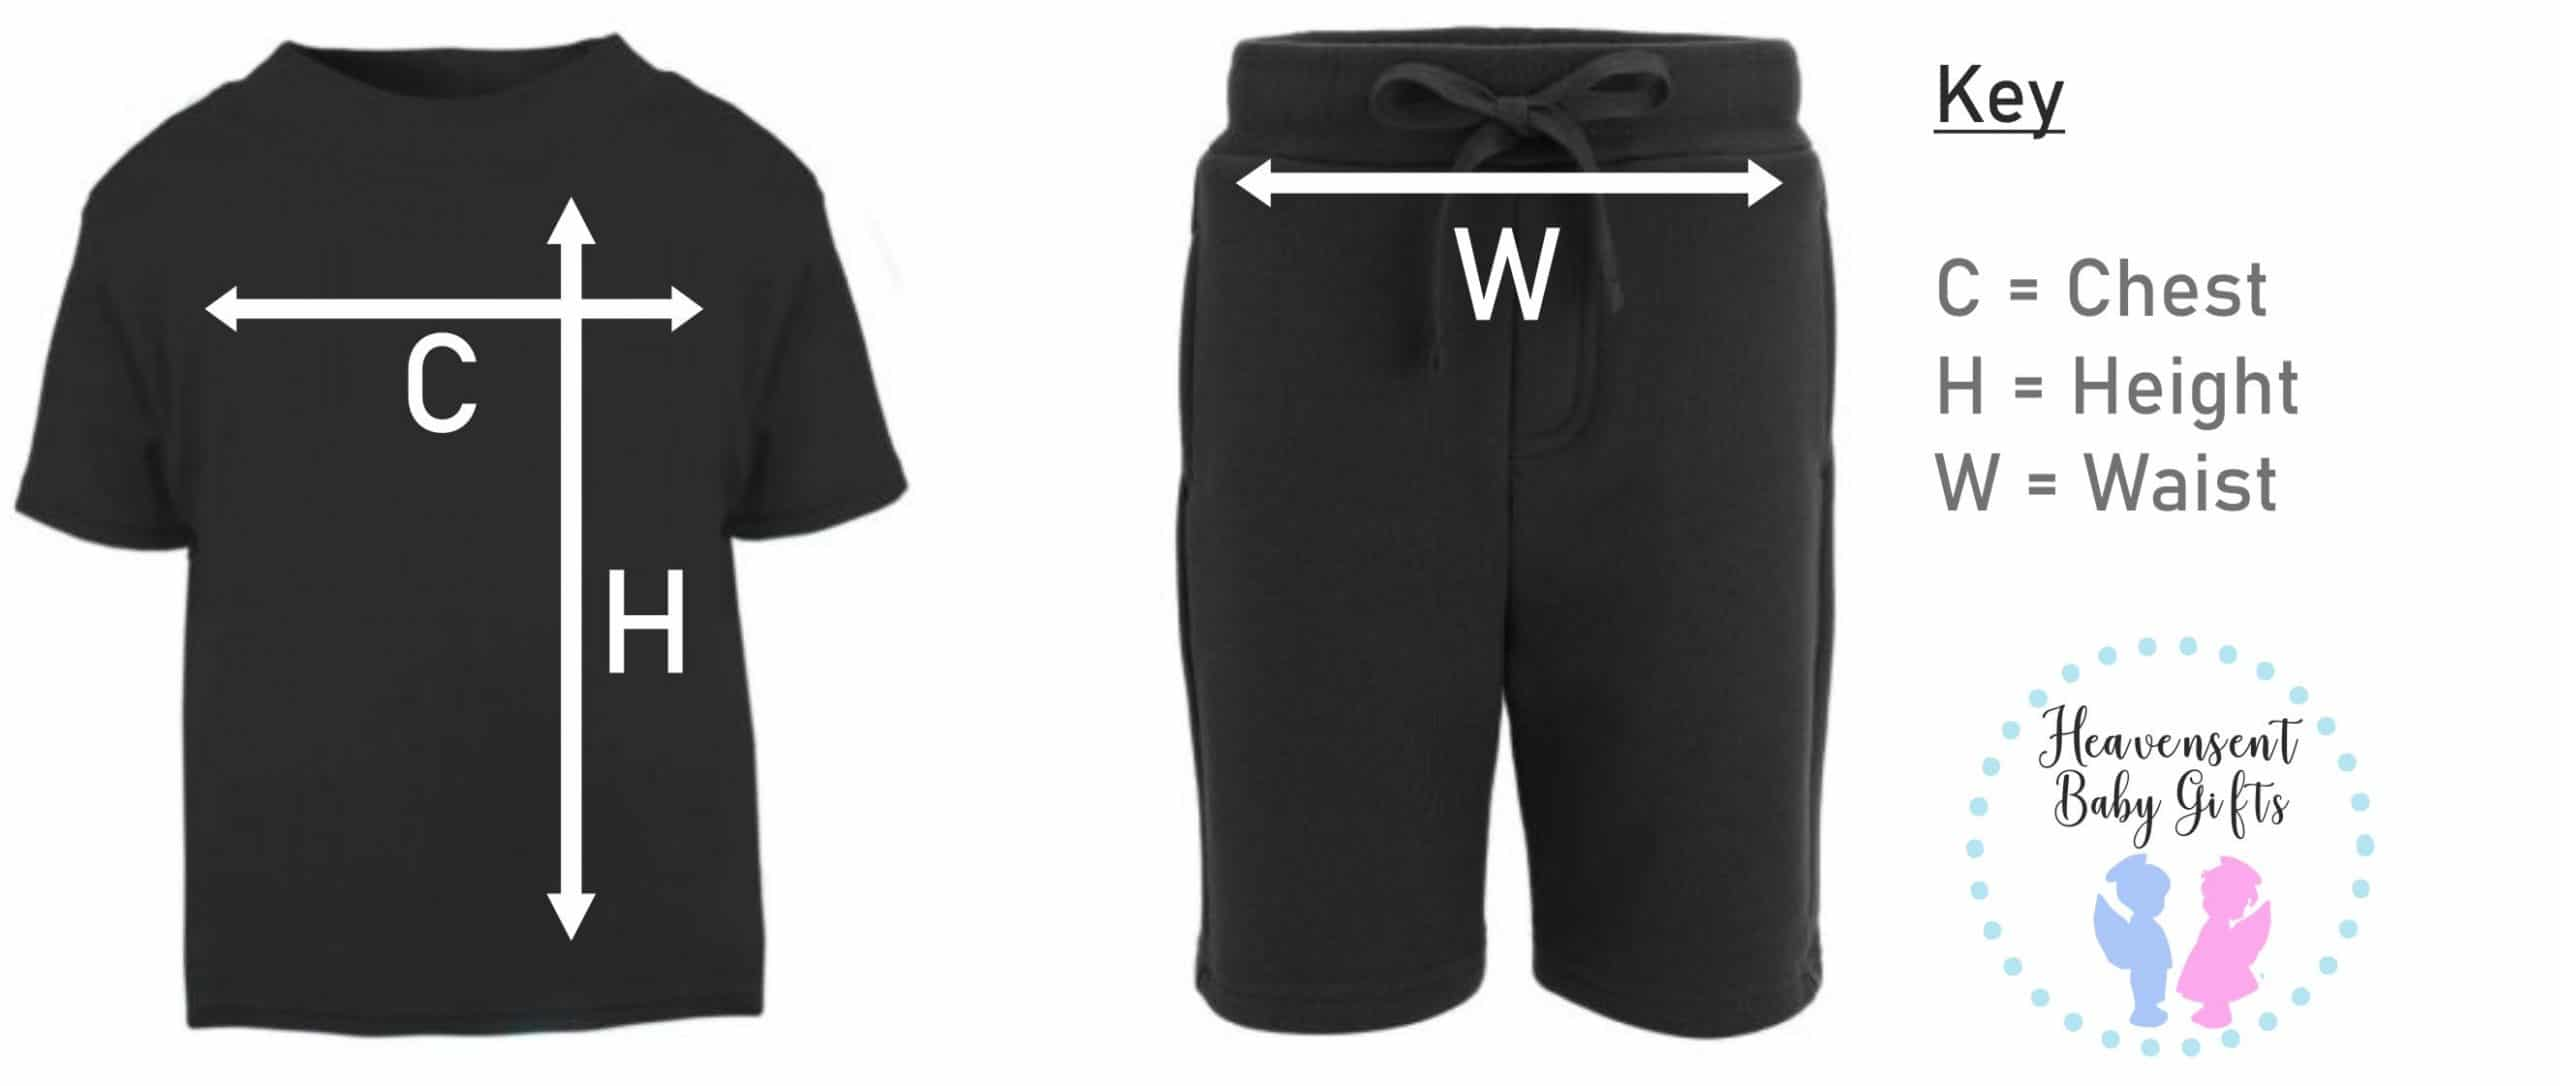 T-shirt & Shorts Set